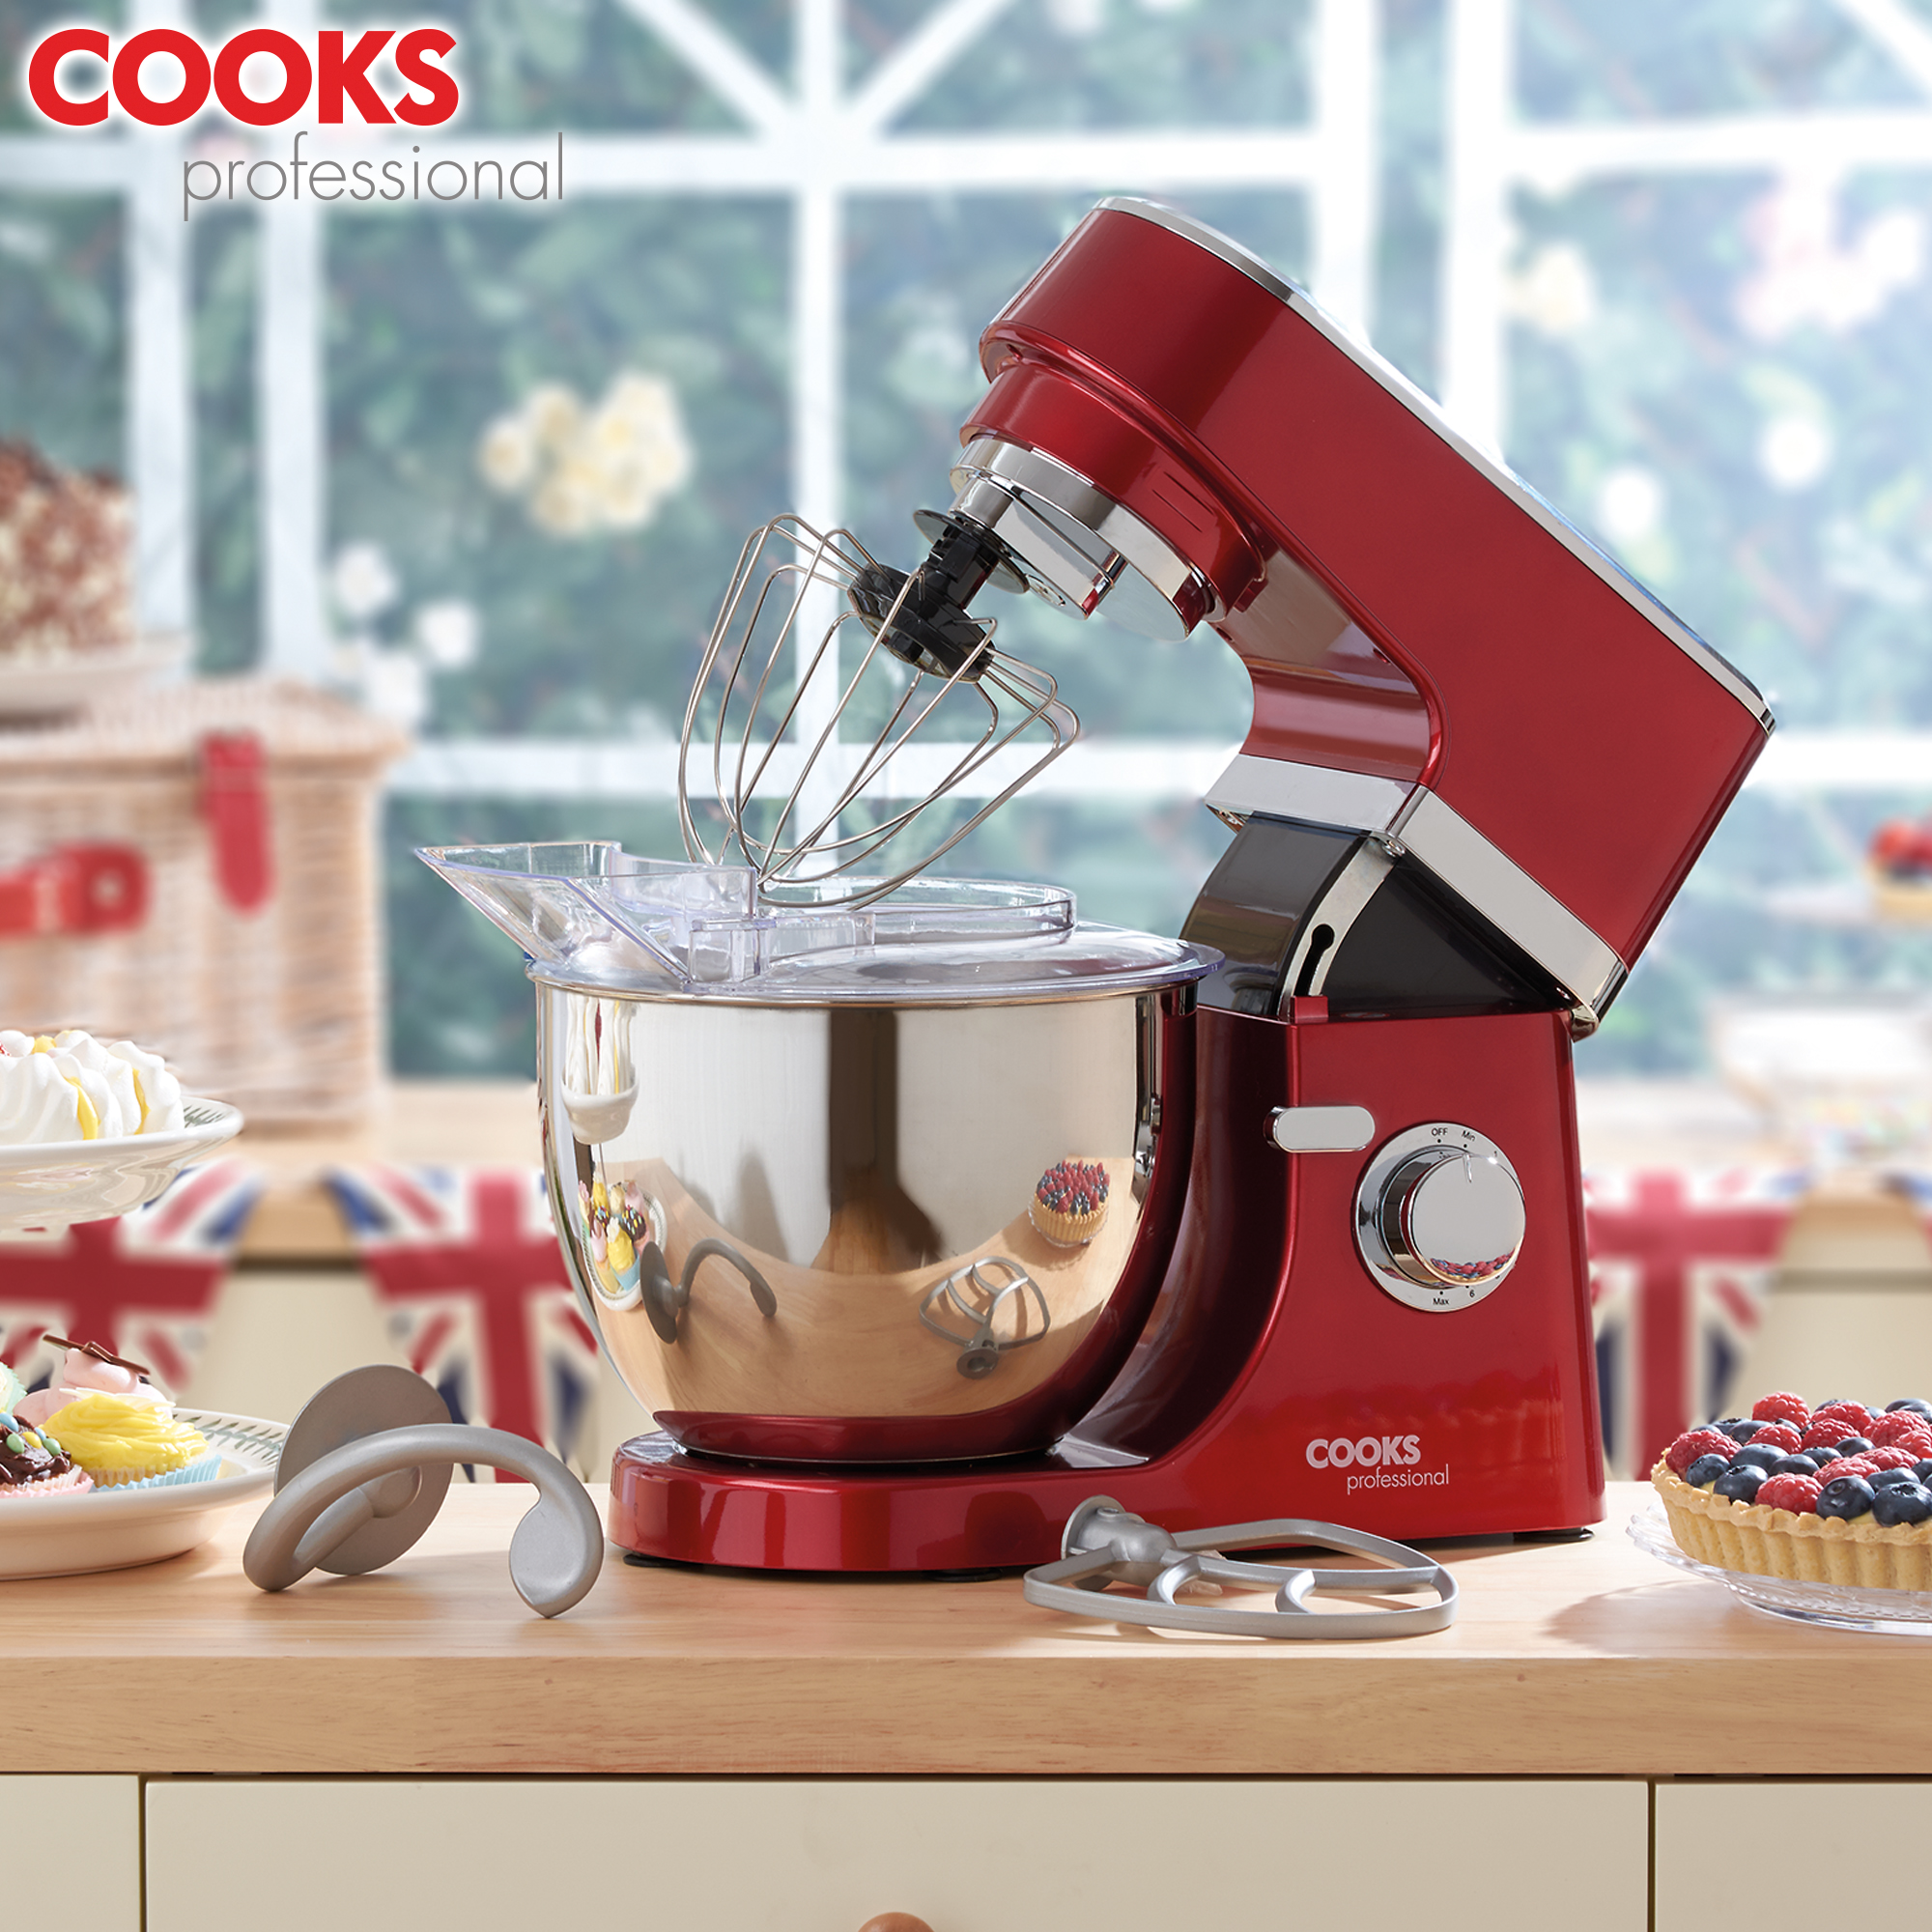 Stand Mixer from Cooks Professional